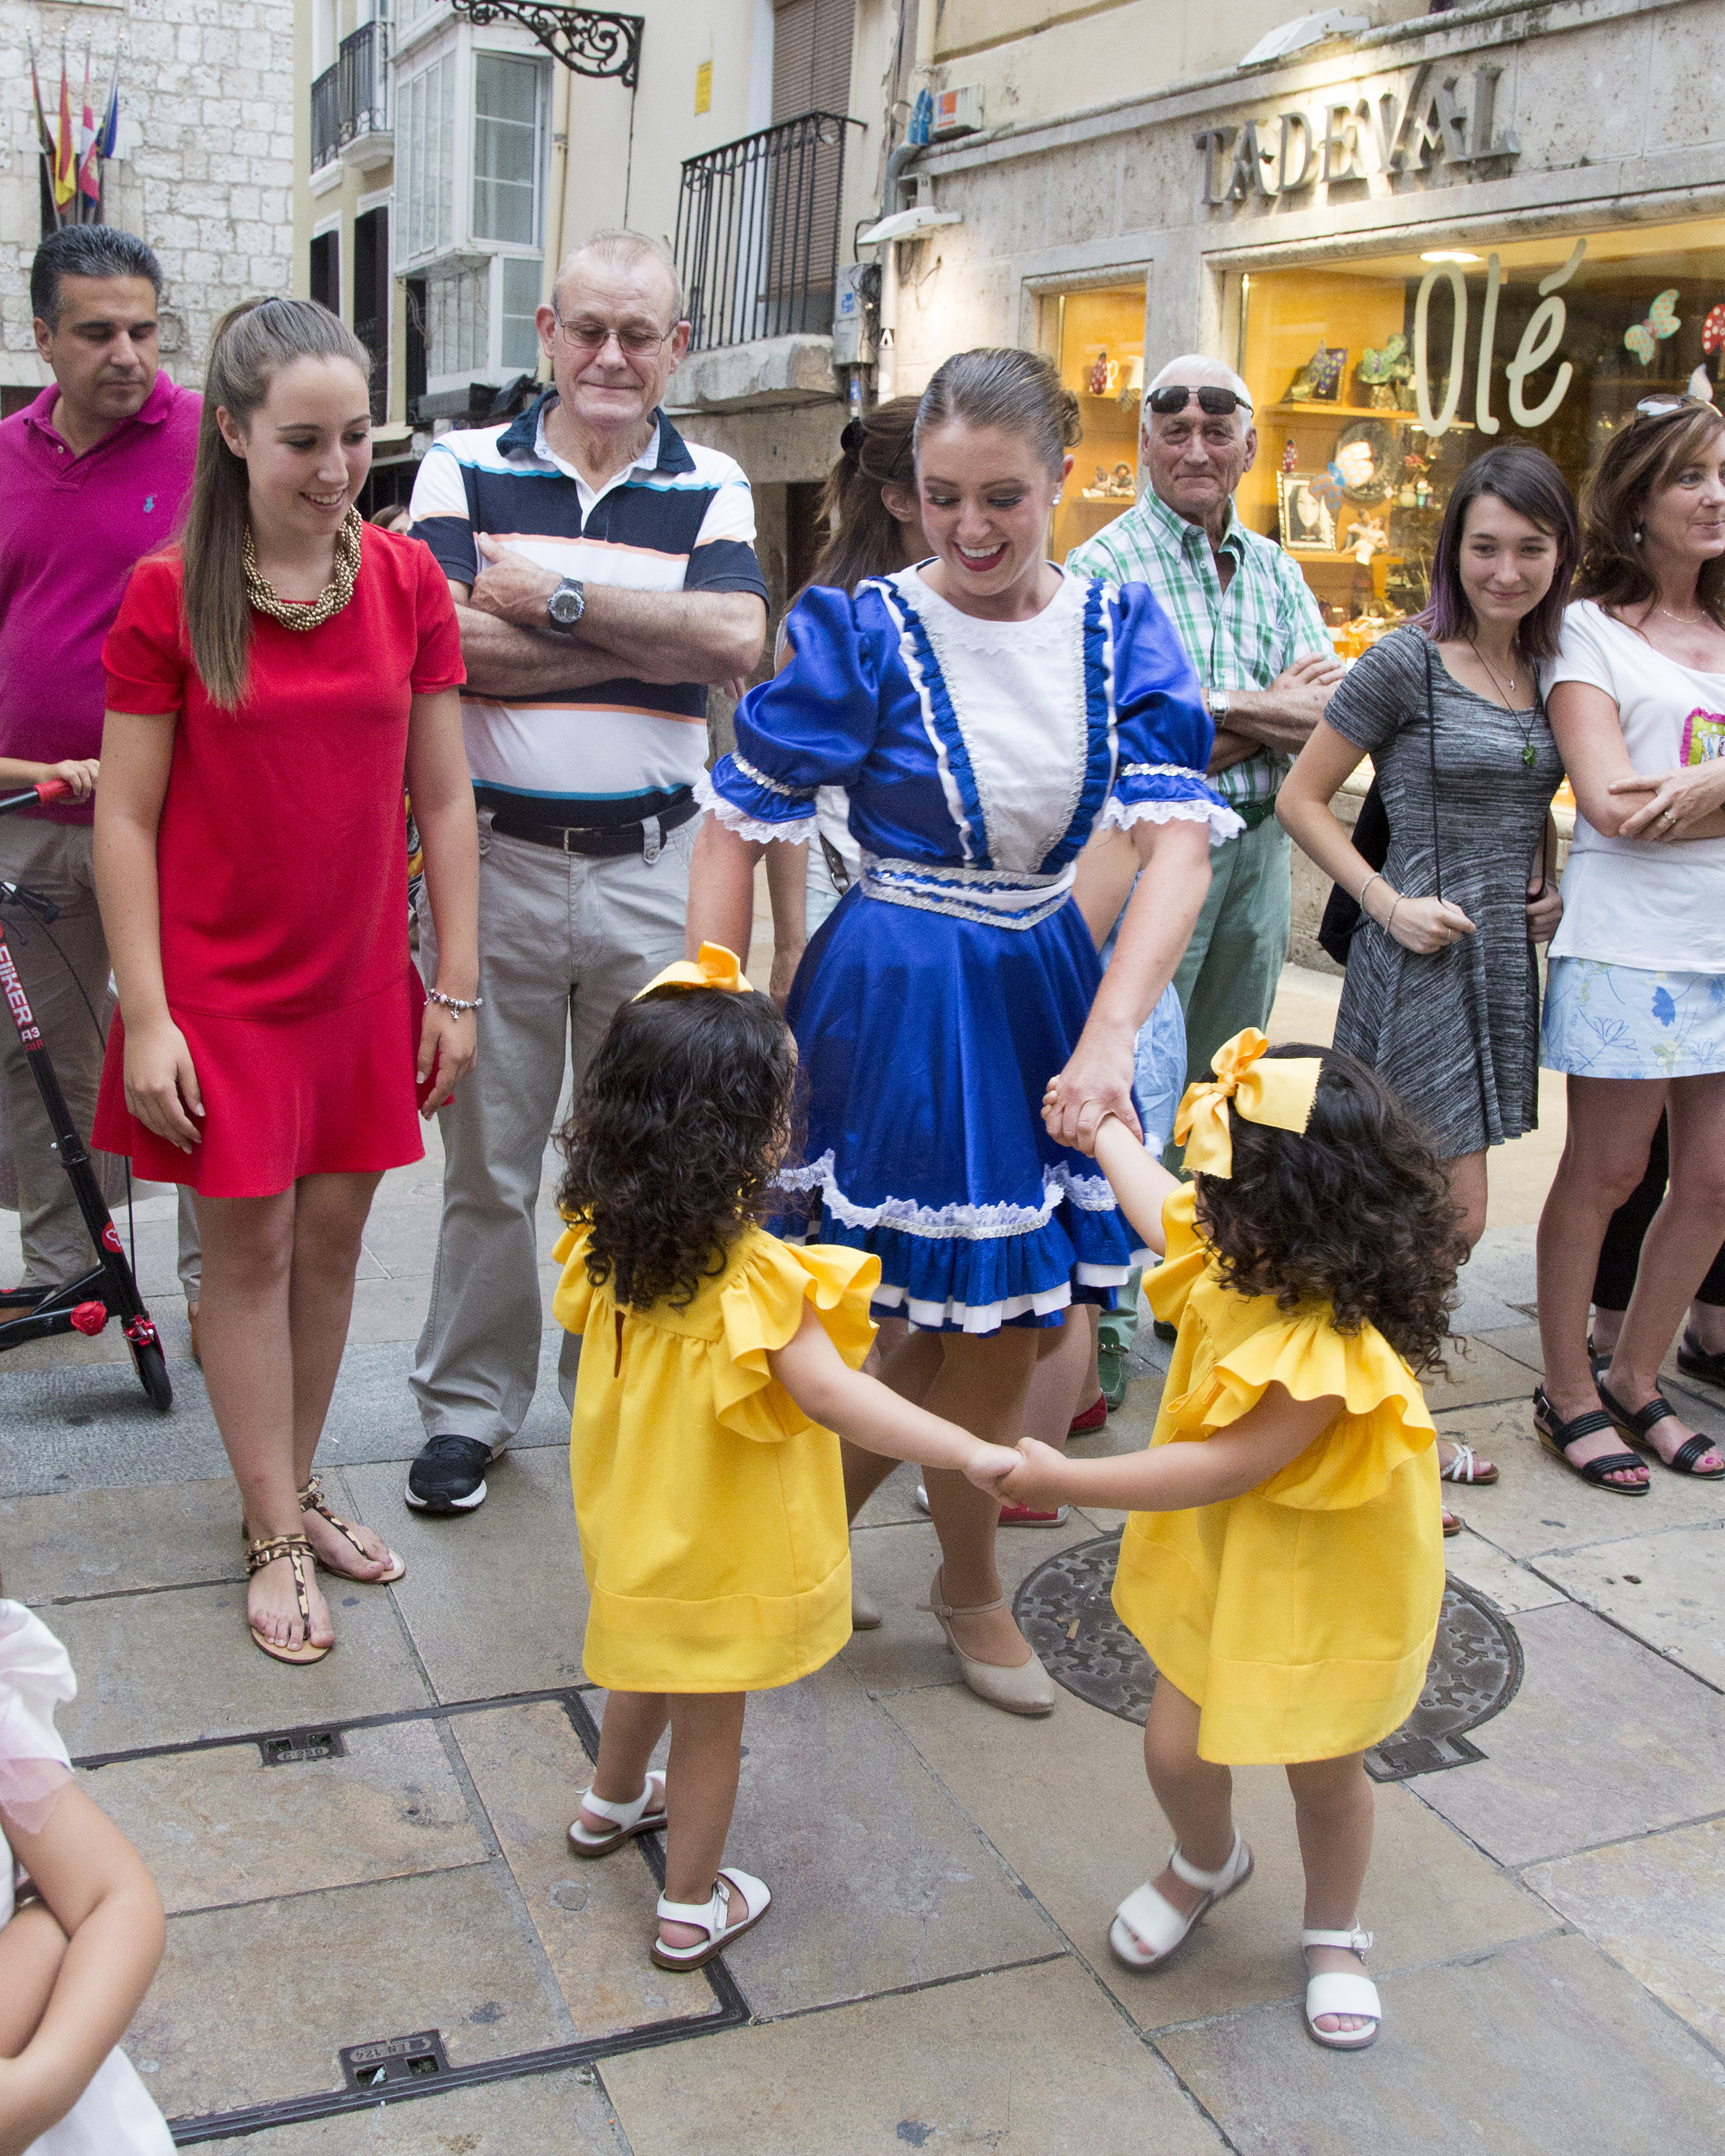 Folk Dancer Kylie Faulk dancing with children in a parade in Spain while attending the International Folkloric Festival 'Ciudad de Burgos' in 2015.